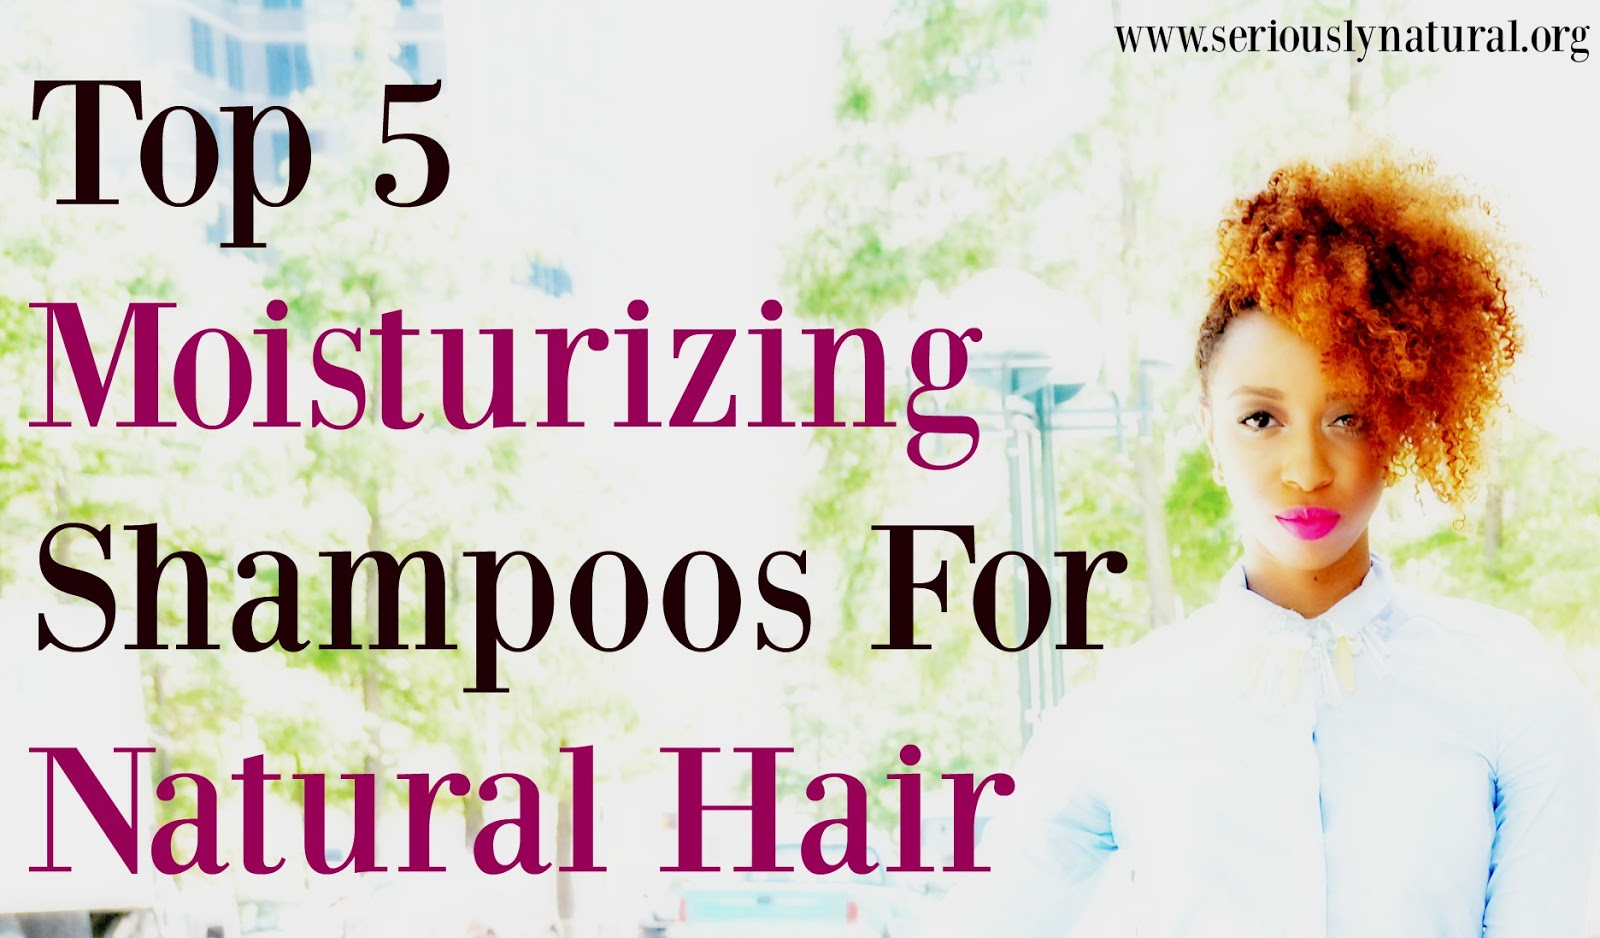 Top 5 Moisturizing Shampoos For Natural Hair